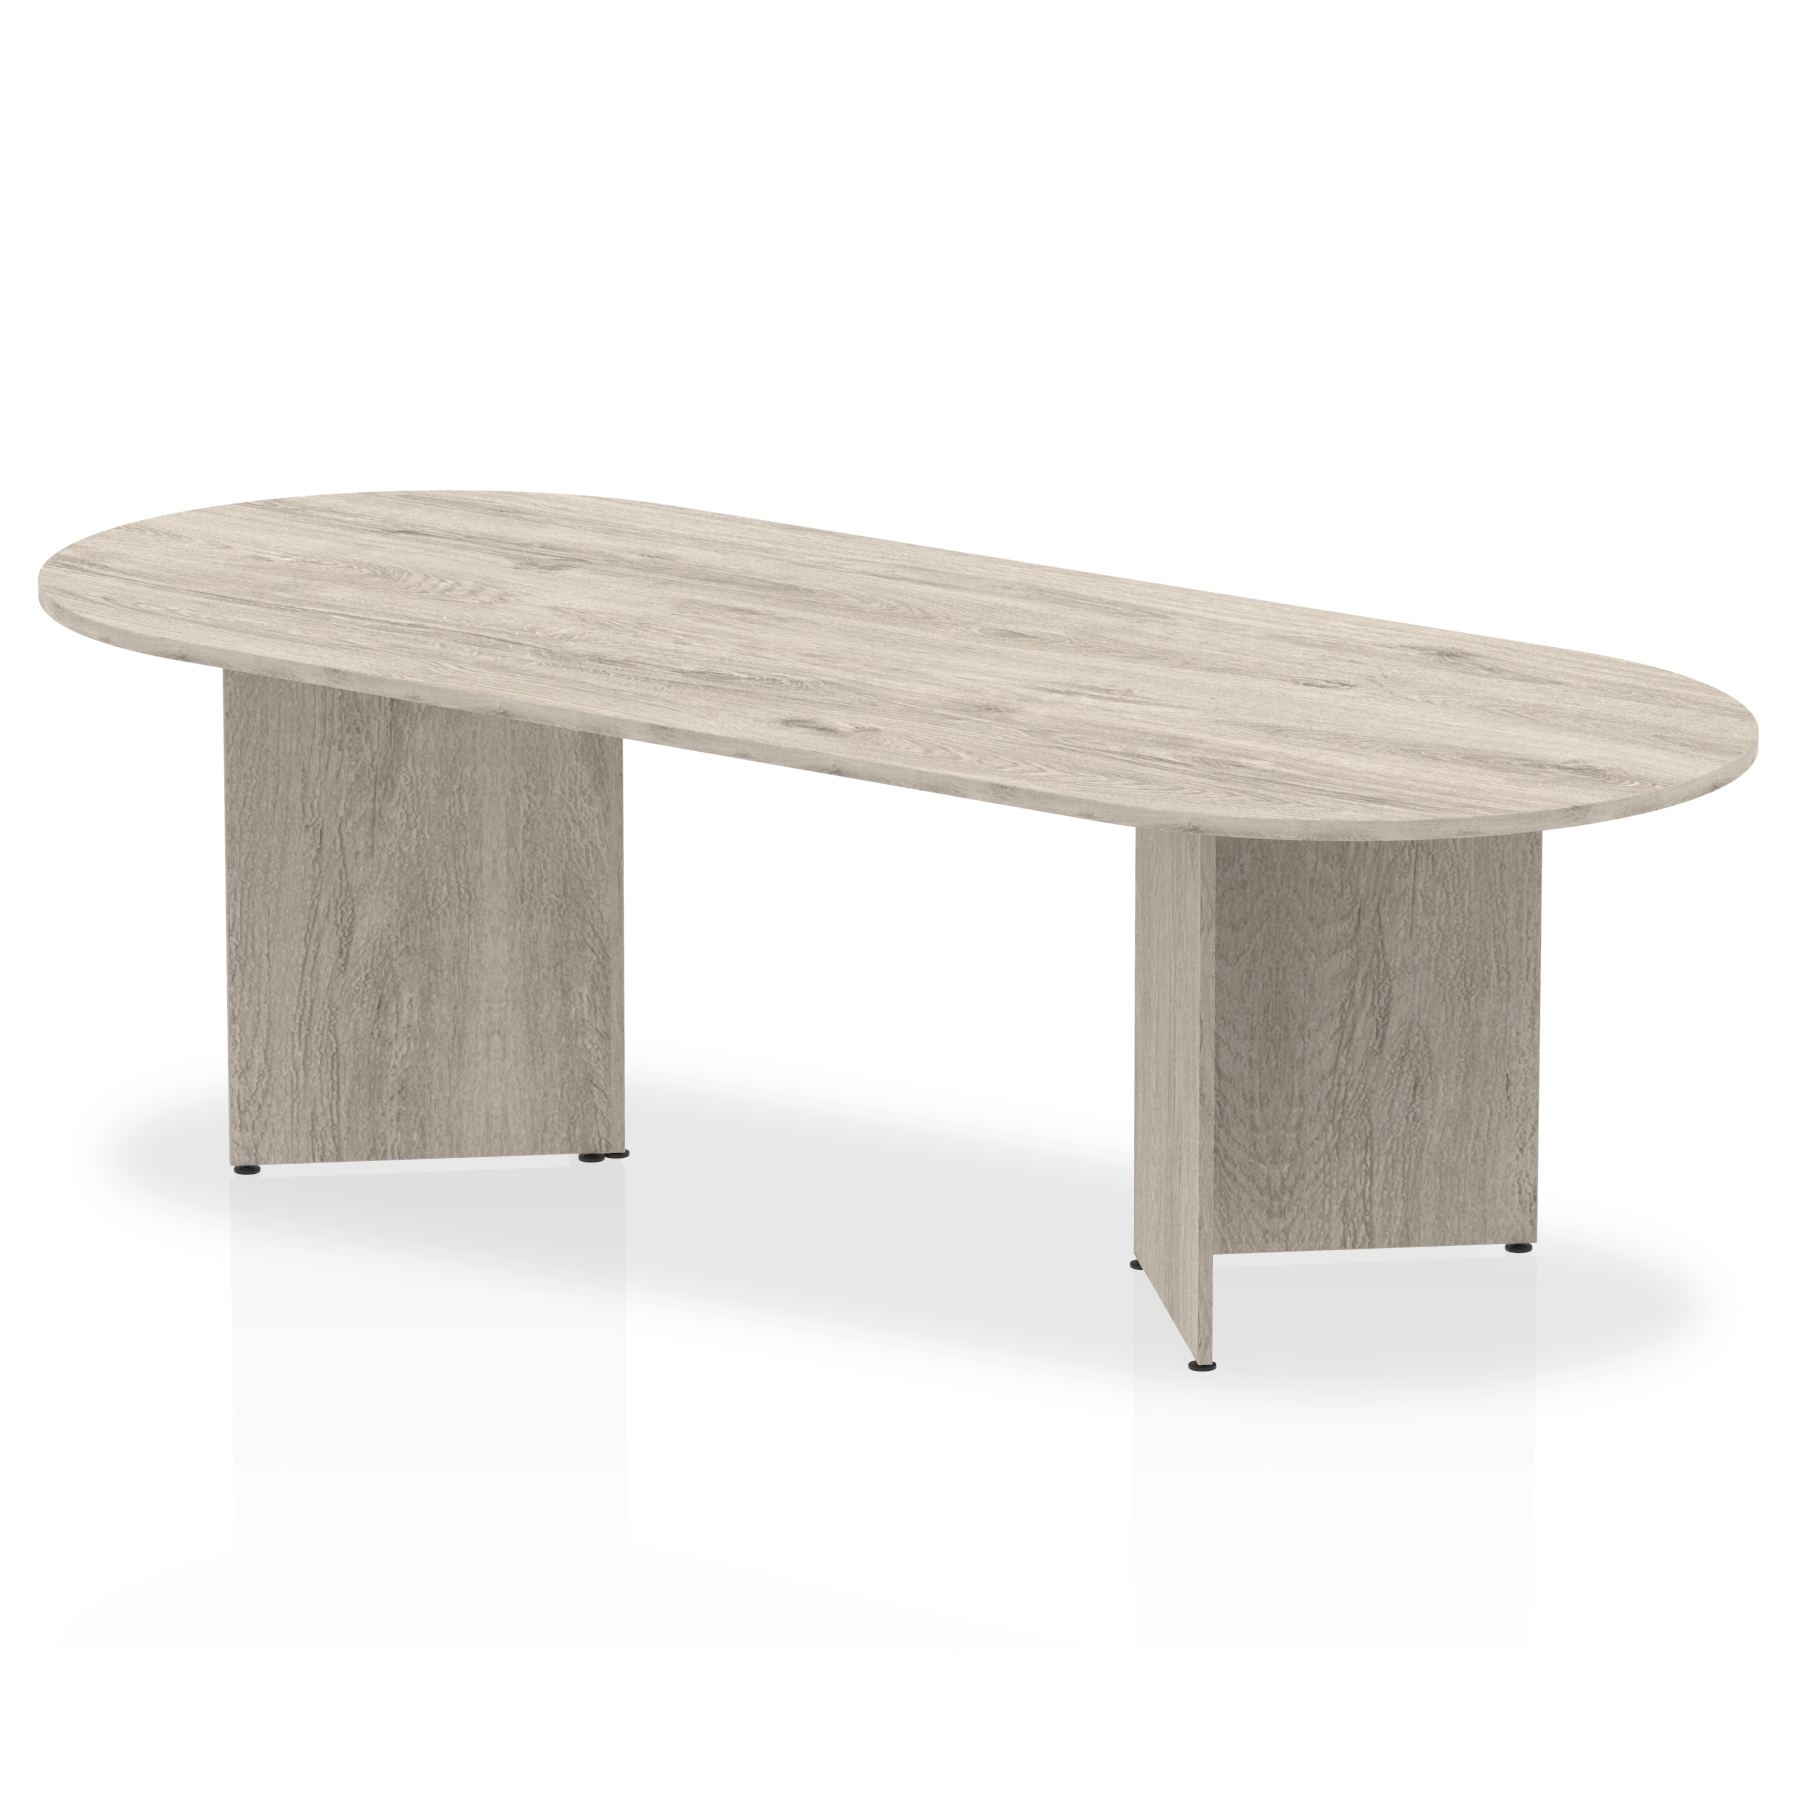 Tables Trexus Boardroom Table Arrowhead 2400x1200x730mm Grey Oak Ref I003278